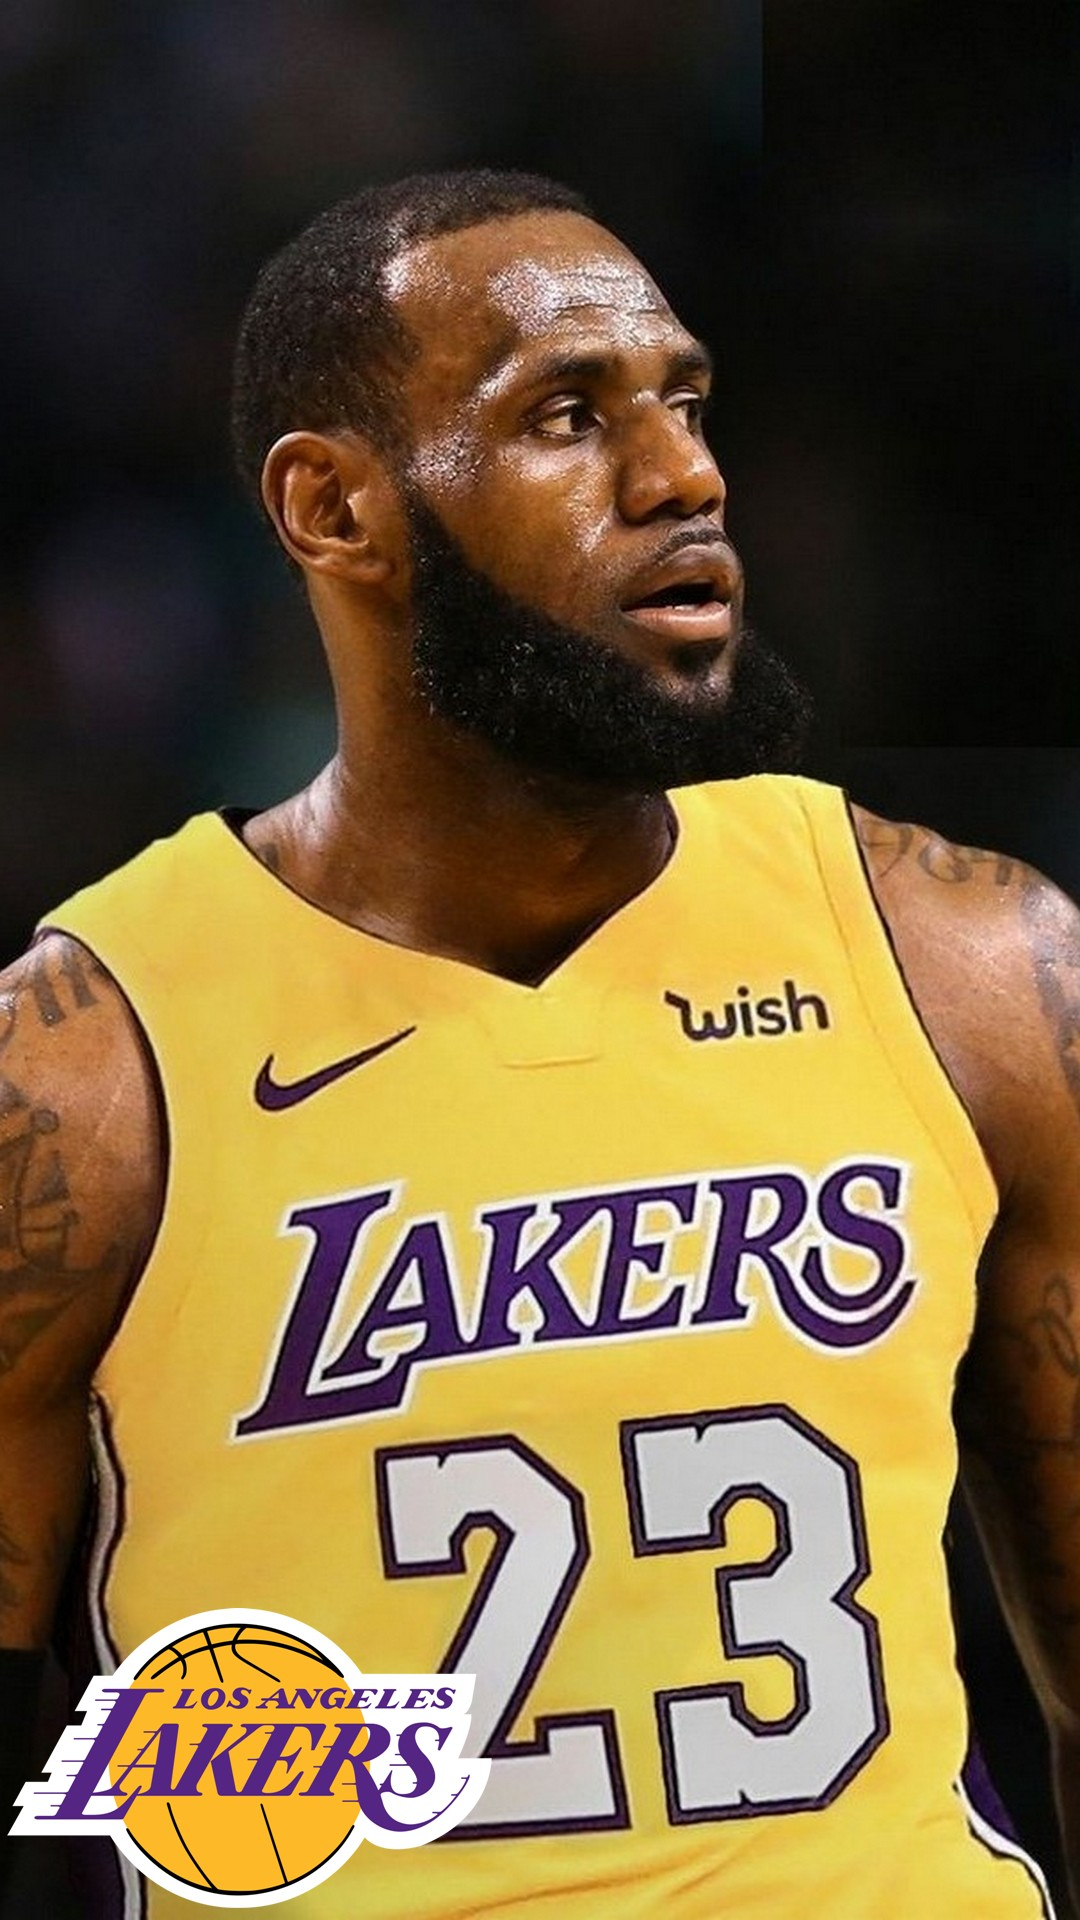 La Lakers Lebron James Wallpaper Iphone Hd With Image Lebron James Laker Hd 1080x1920 Download Hd Wallpaper Wallpapertip